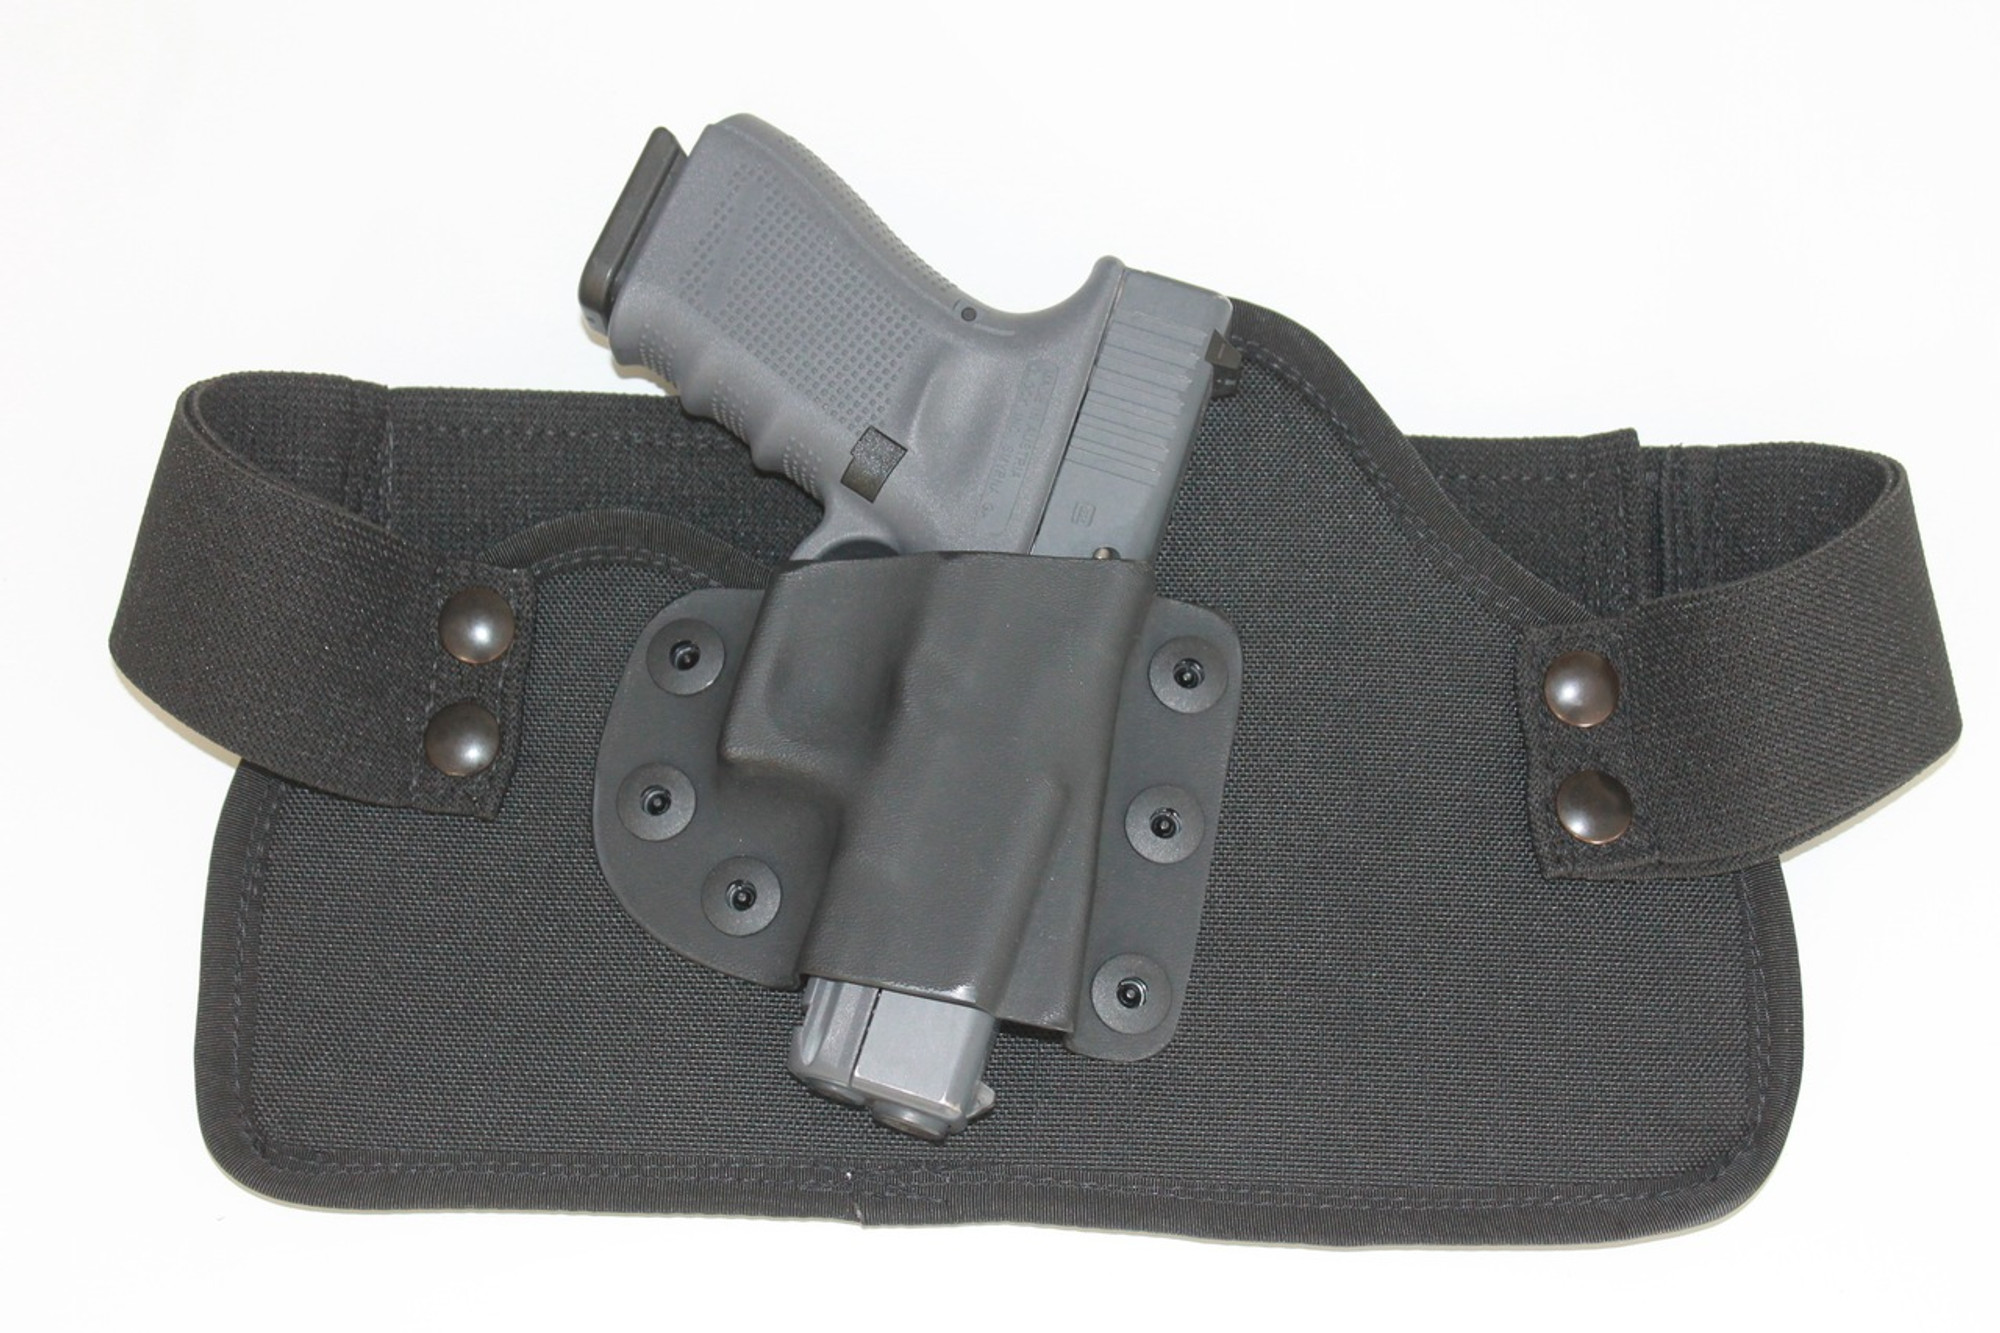 TRR IWB Combat Cut Concealed Carry Holster